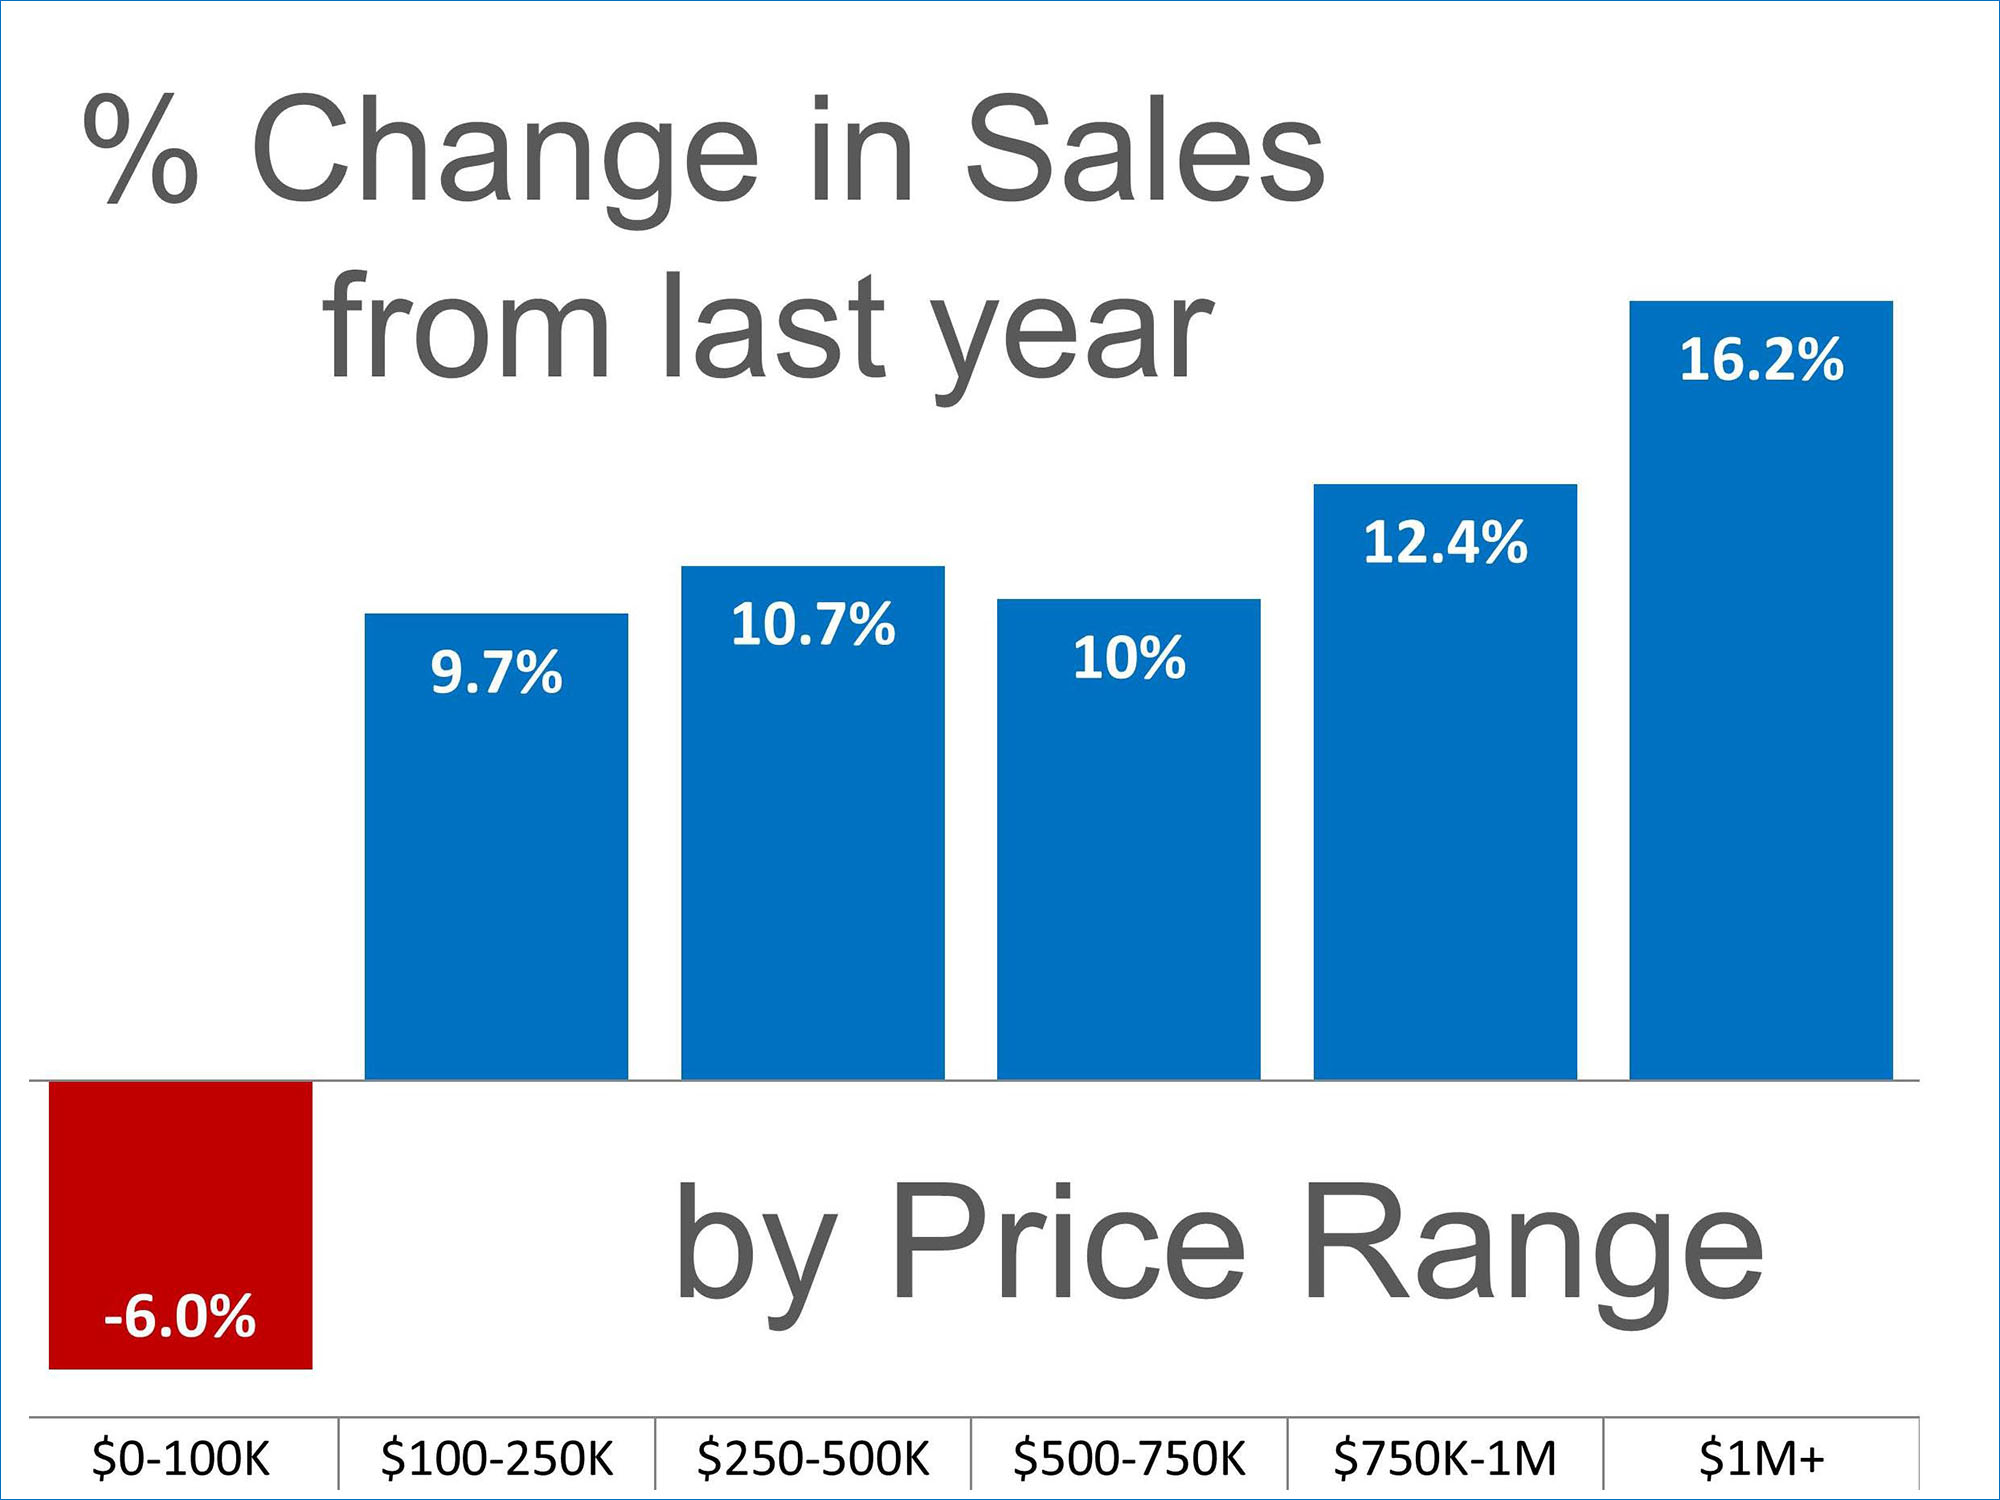 Sales Up in almost Every Price Range | Simplifying The Market